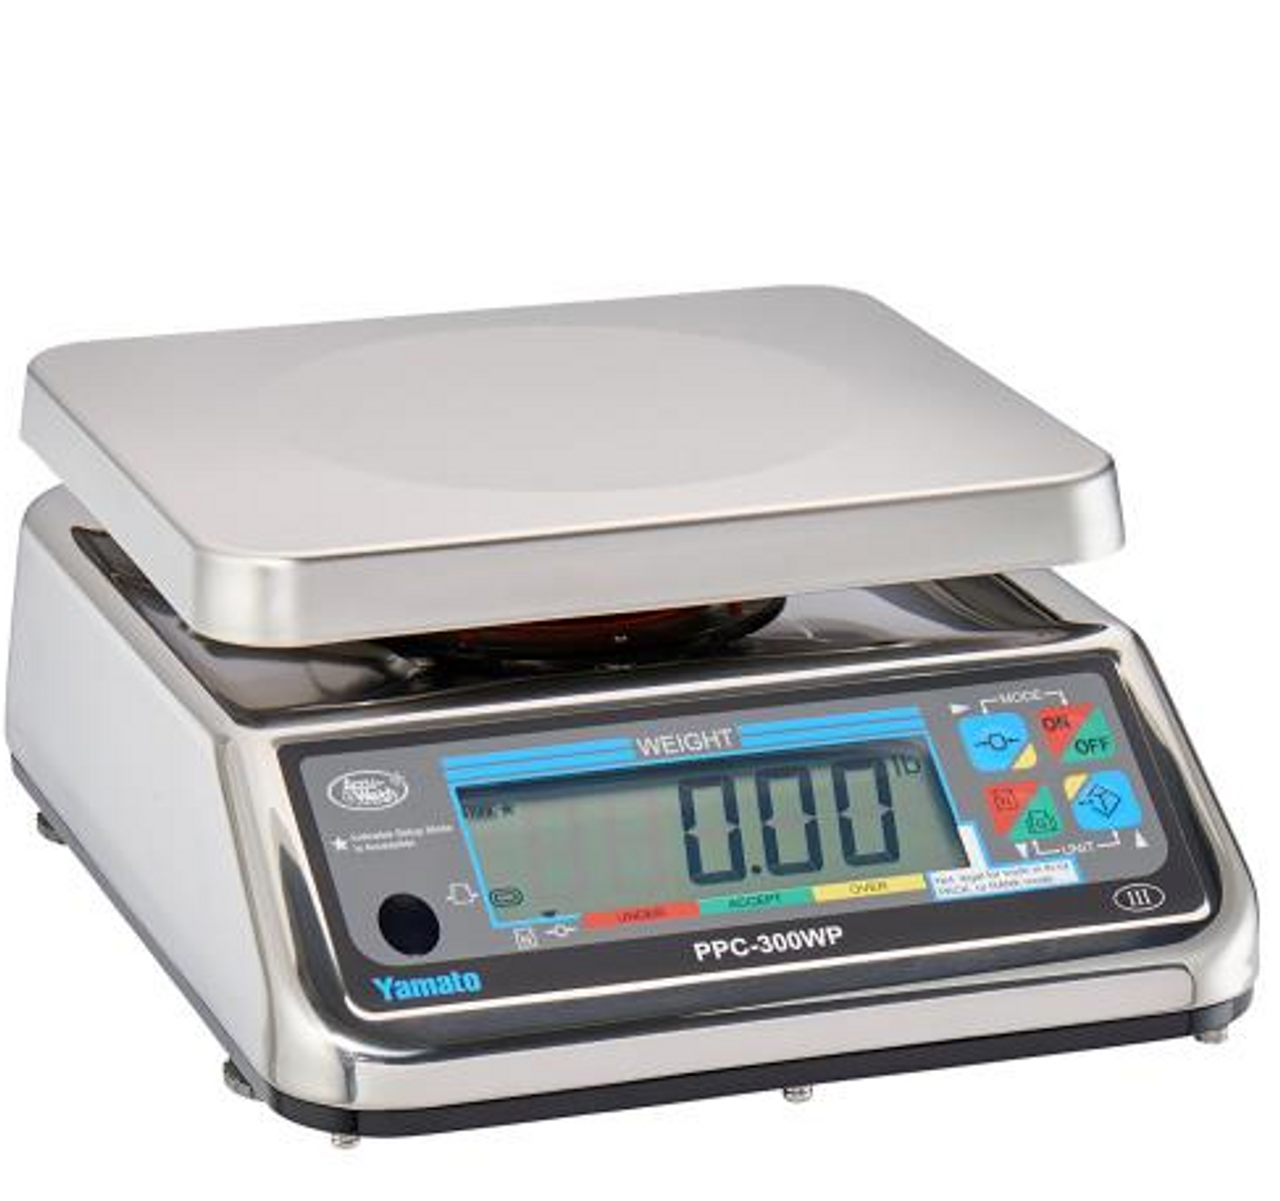 "Yamato PPC-300WP - Portion Control Scale ""Washdown"" - All Models -"